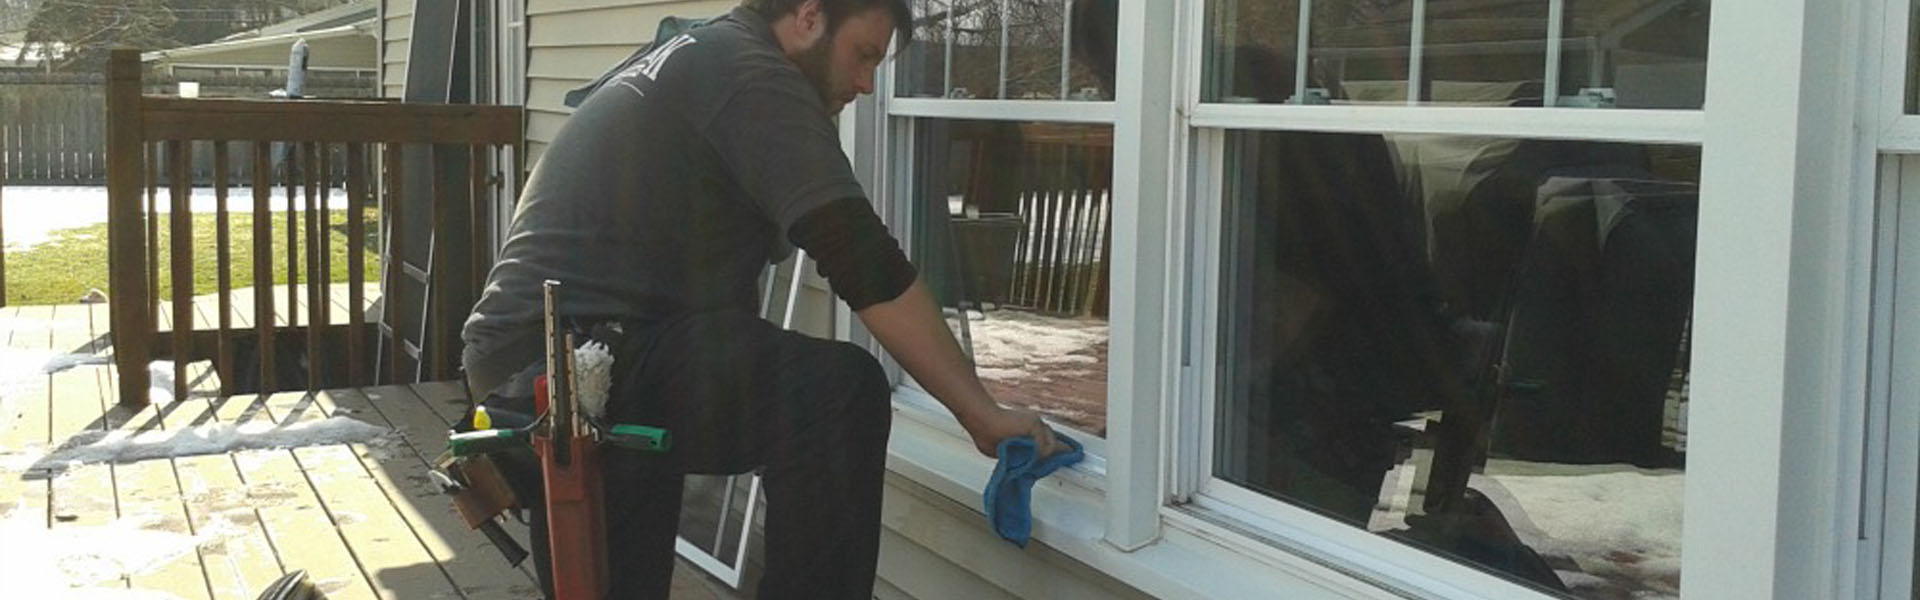 how to clean window sill tracks